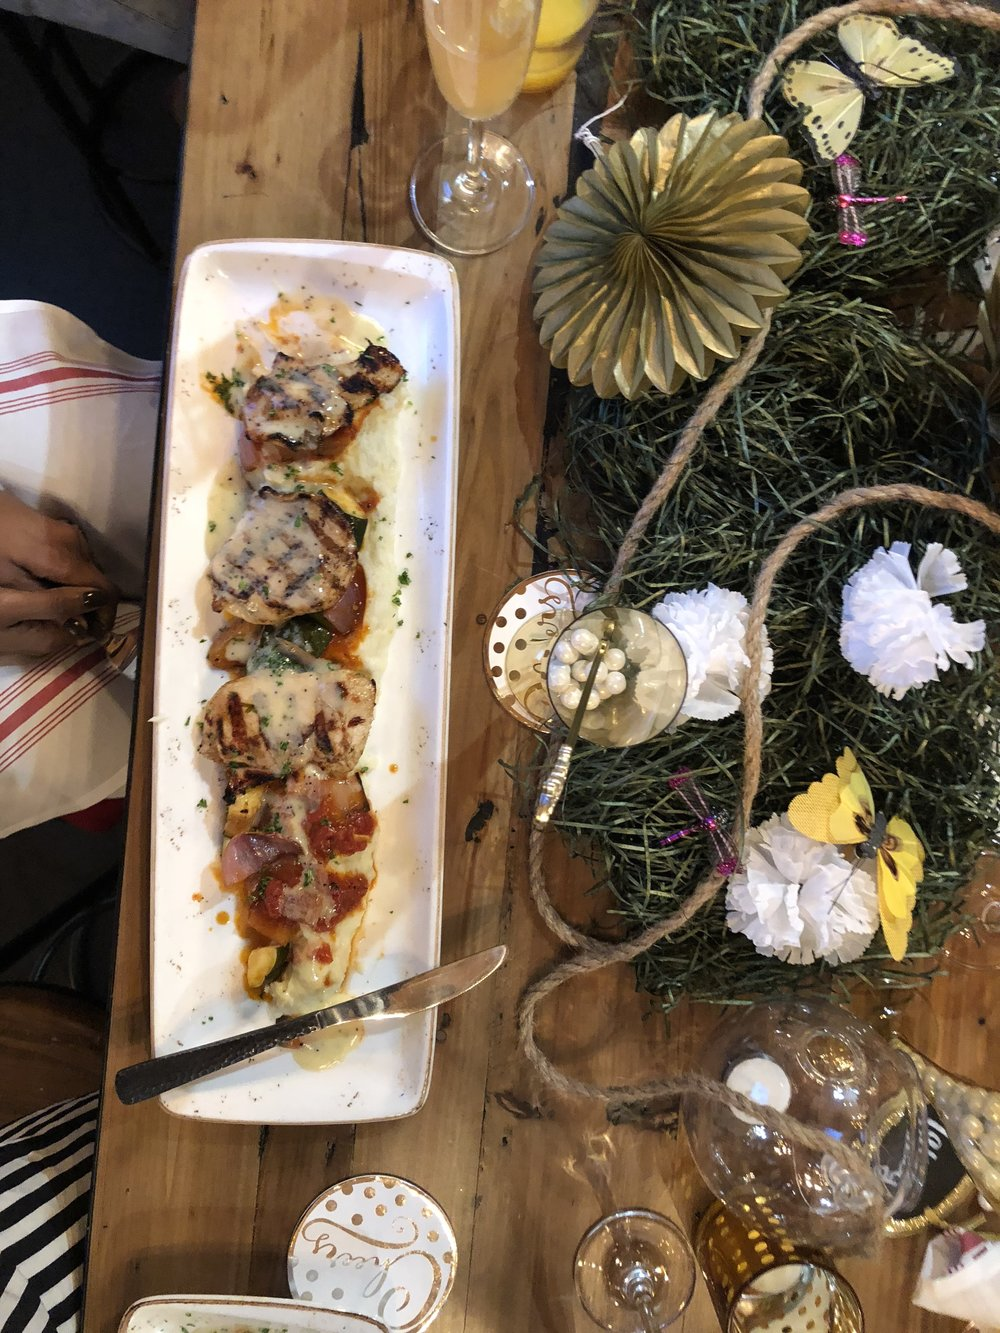 The food choices fit everyone's dietary likes/restrictions. The brunch menu gave us a variety of things to eat. The chicken kabobs were a favorite among the table especially for $12